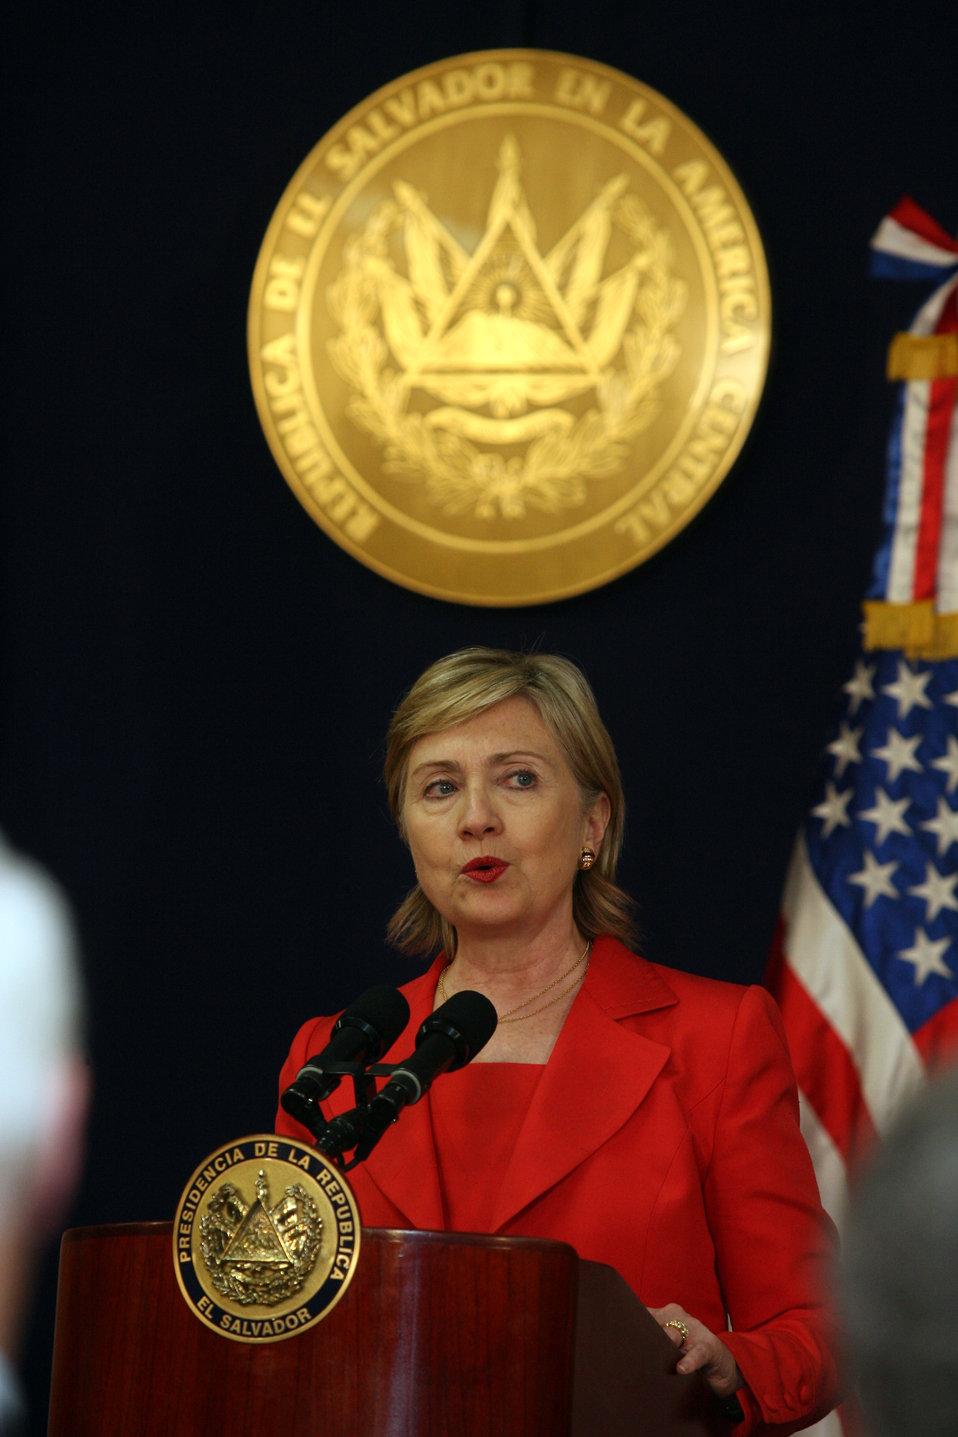 Joint Press Conference in El Salvador With Secretary Clinton and Salvadoran President